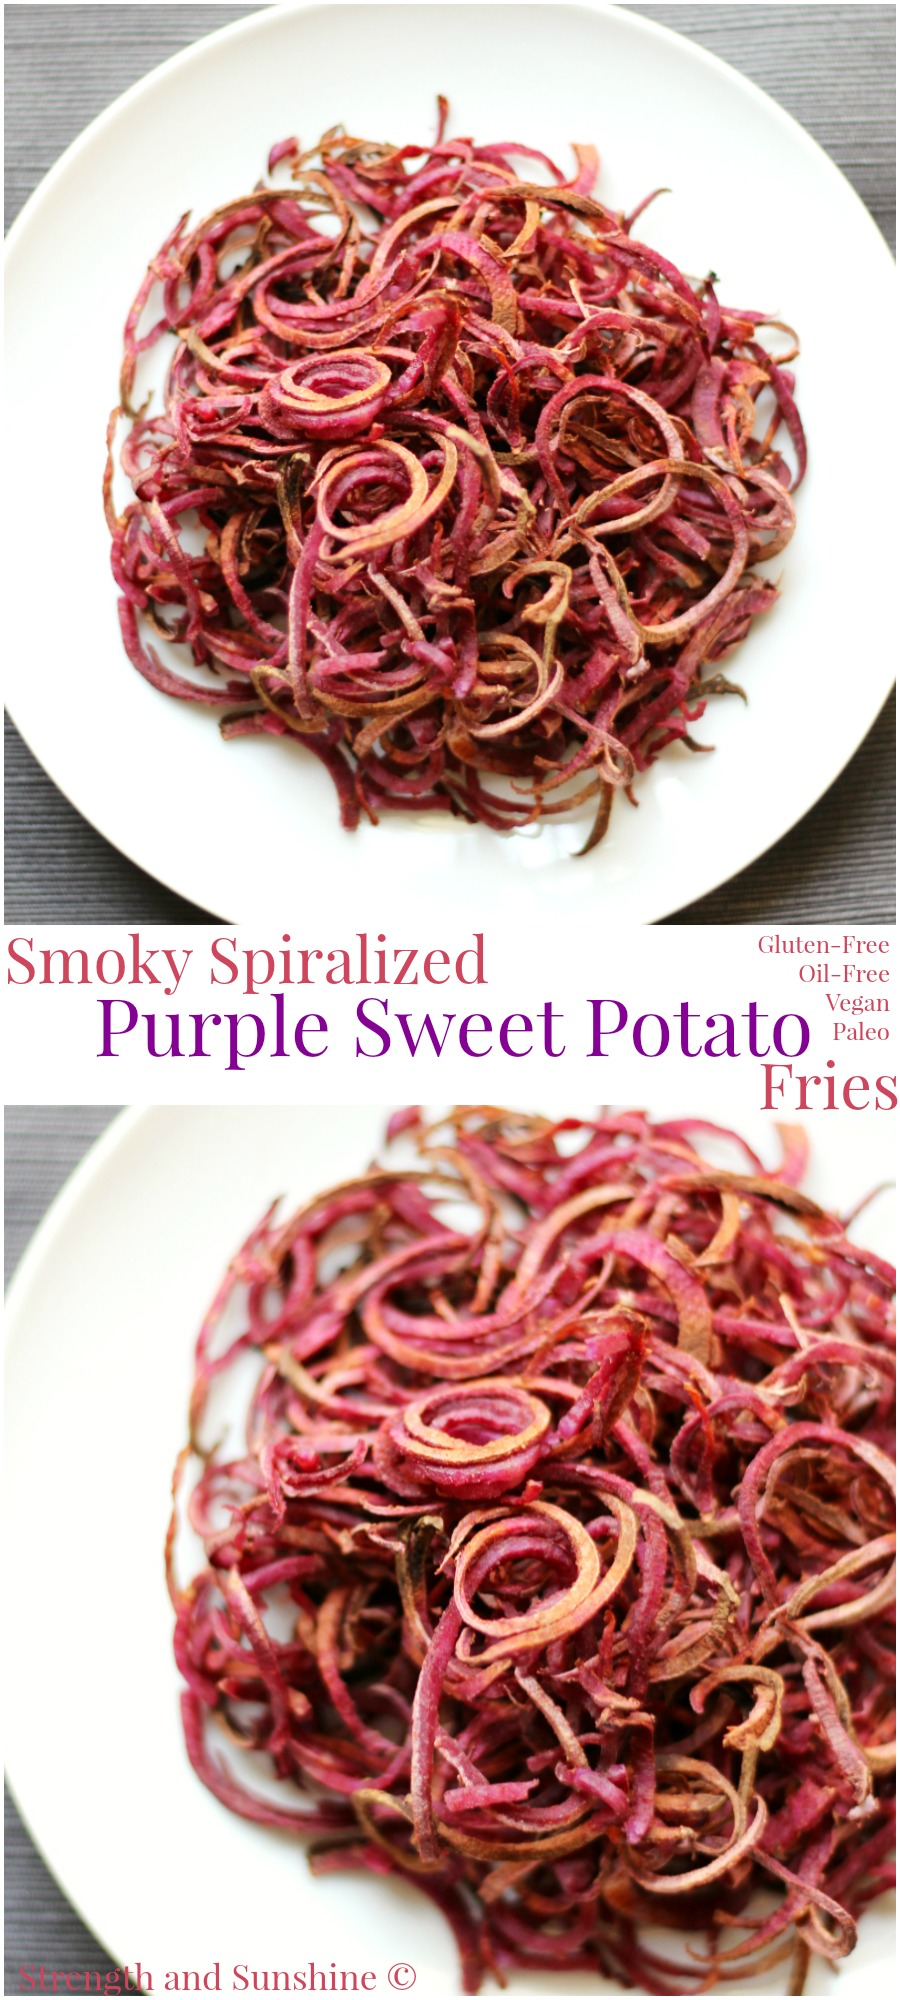 Smoky Spiralized Purple Sweet Potato Fries | Strength and Sunshine @RebeccaGF666 Take your fries up a few notches. These smoky spiralized purple sweet potato fries are anything but boring! Baked, crispy, colorful, & smoky! Gluten-free, vegan, paleo, & oil-free, these fries will change your life!